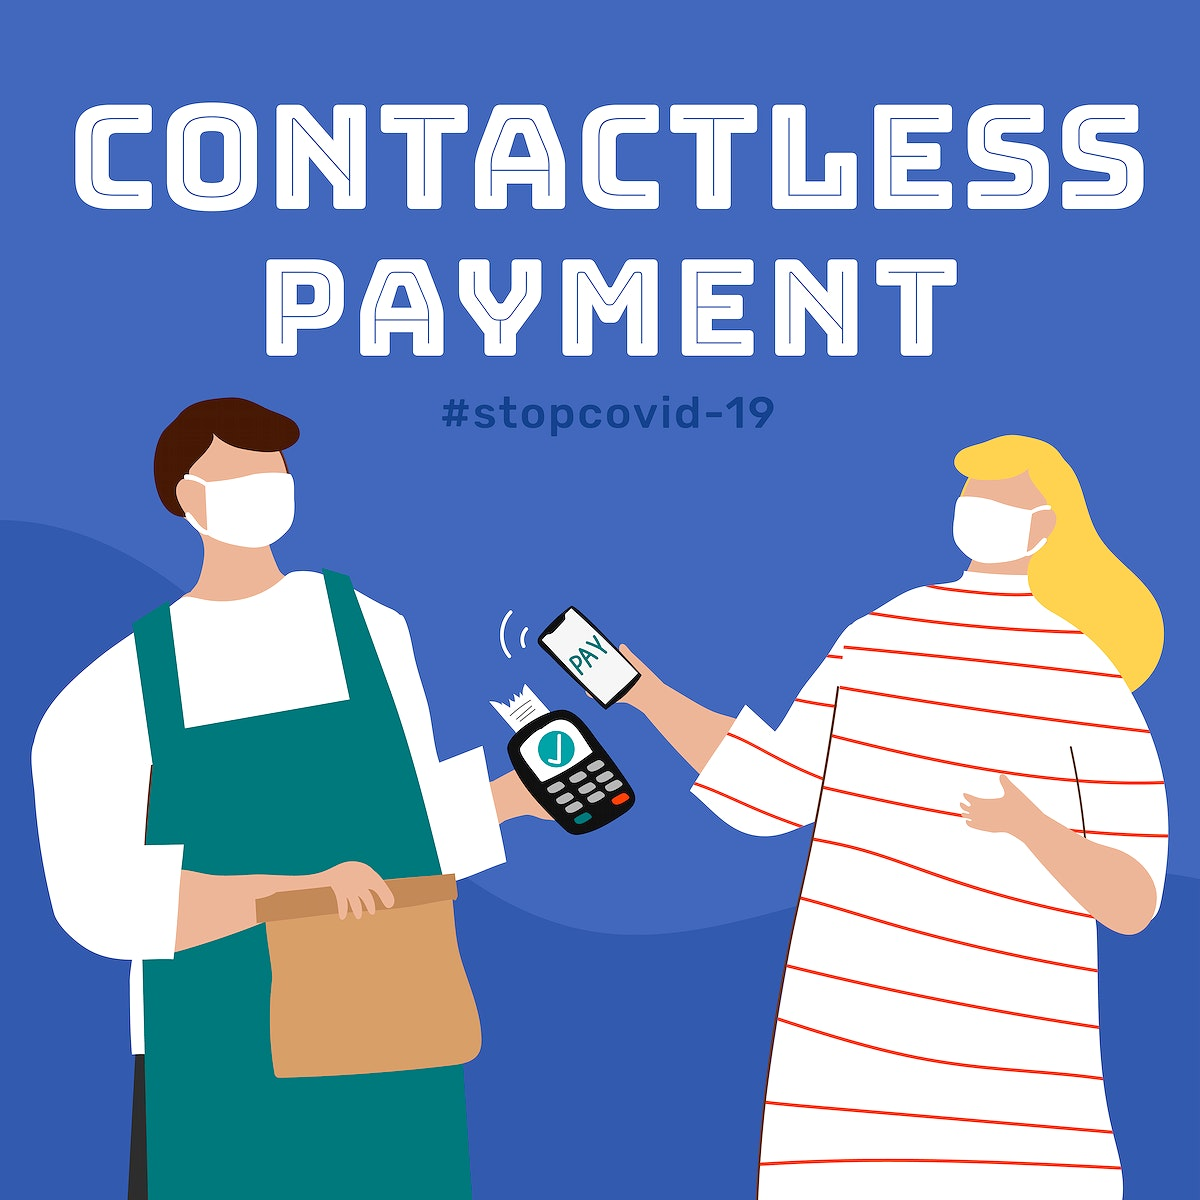 Contactless payment during covid-19 outbreak template vector